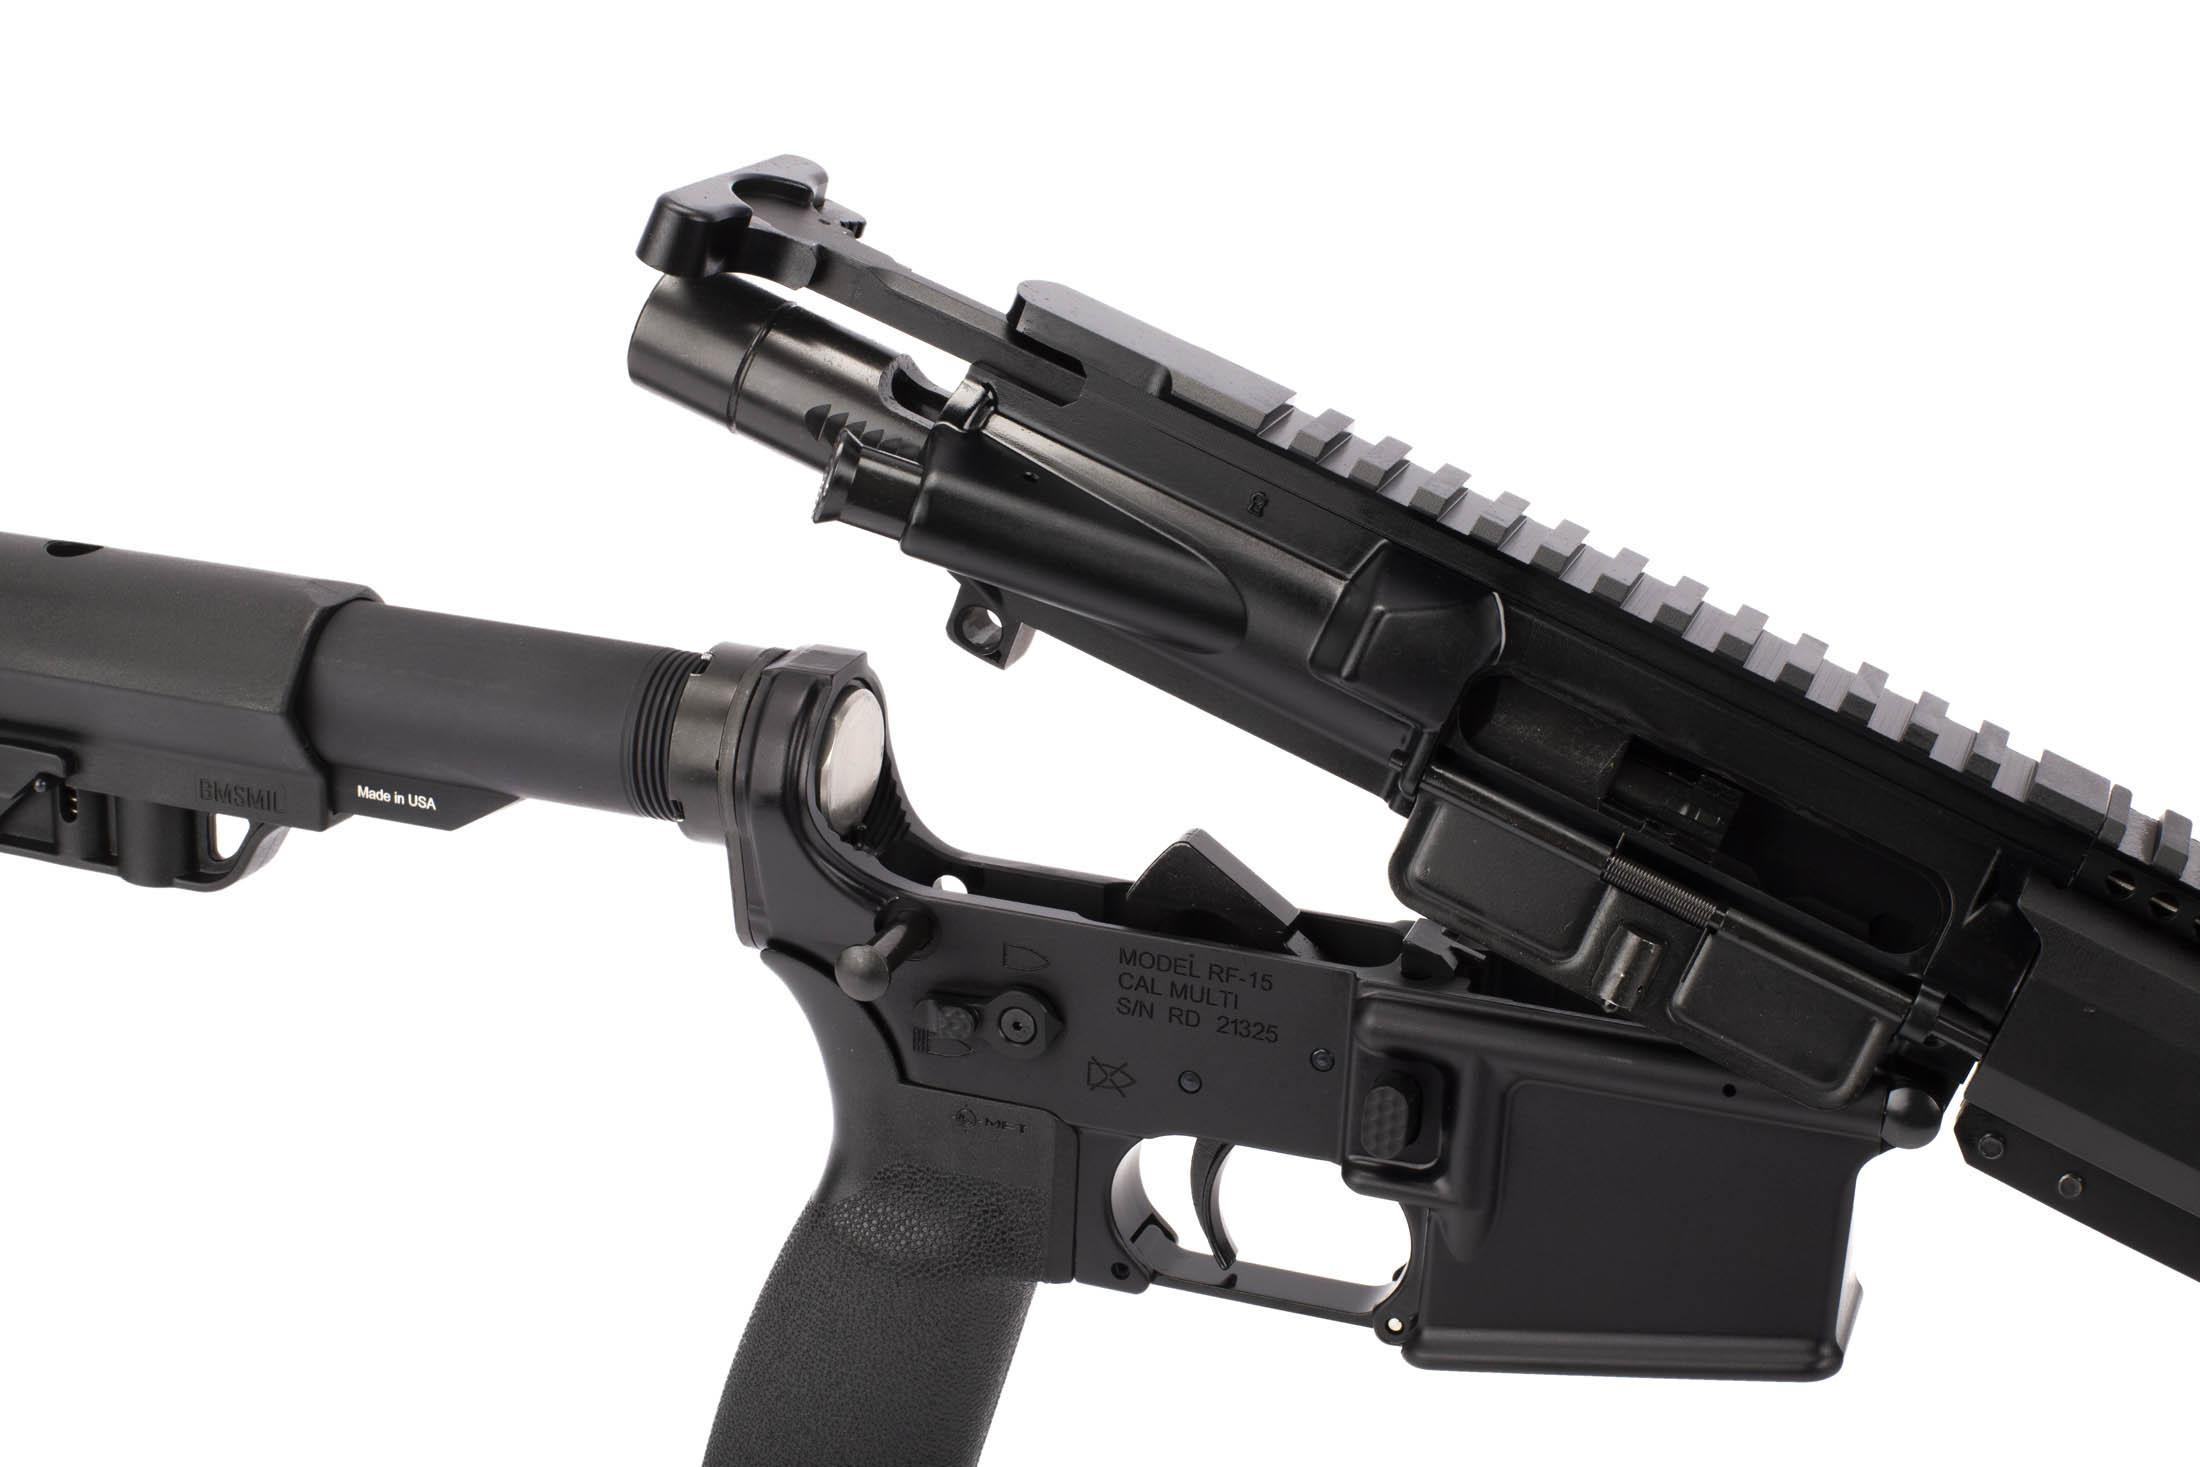 Radical Firearms 5.56 NATO AR-15 with 16in barrel has a carbine buffer and M16 bolt carrier group